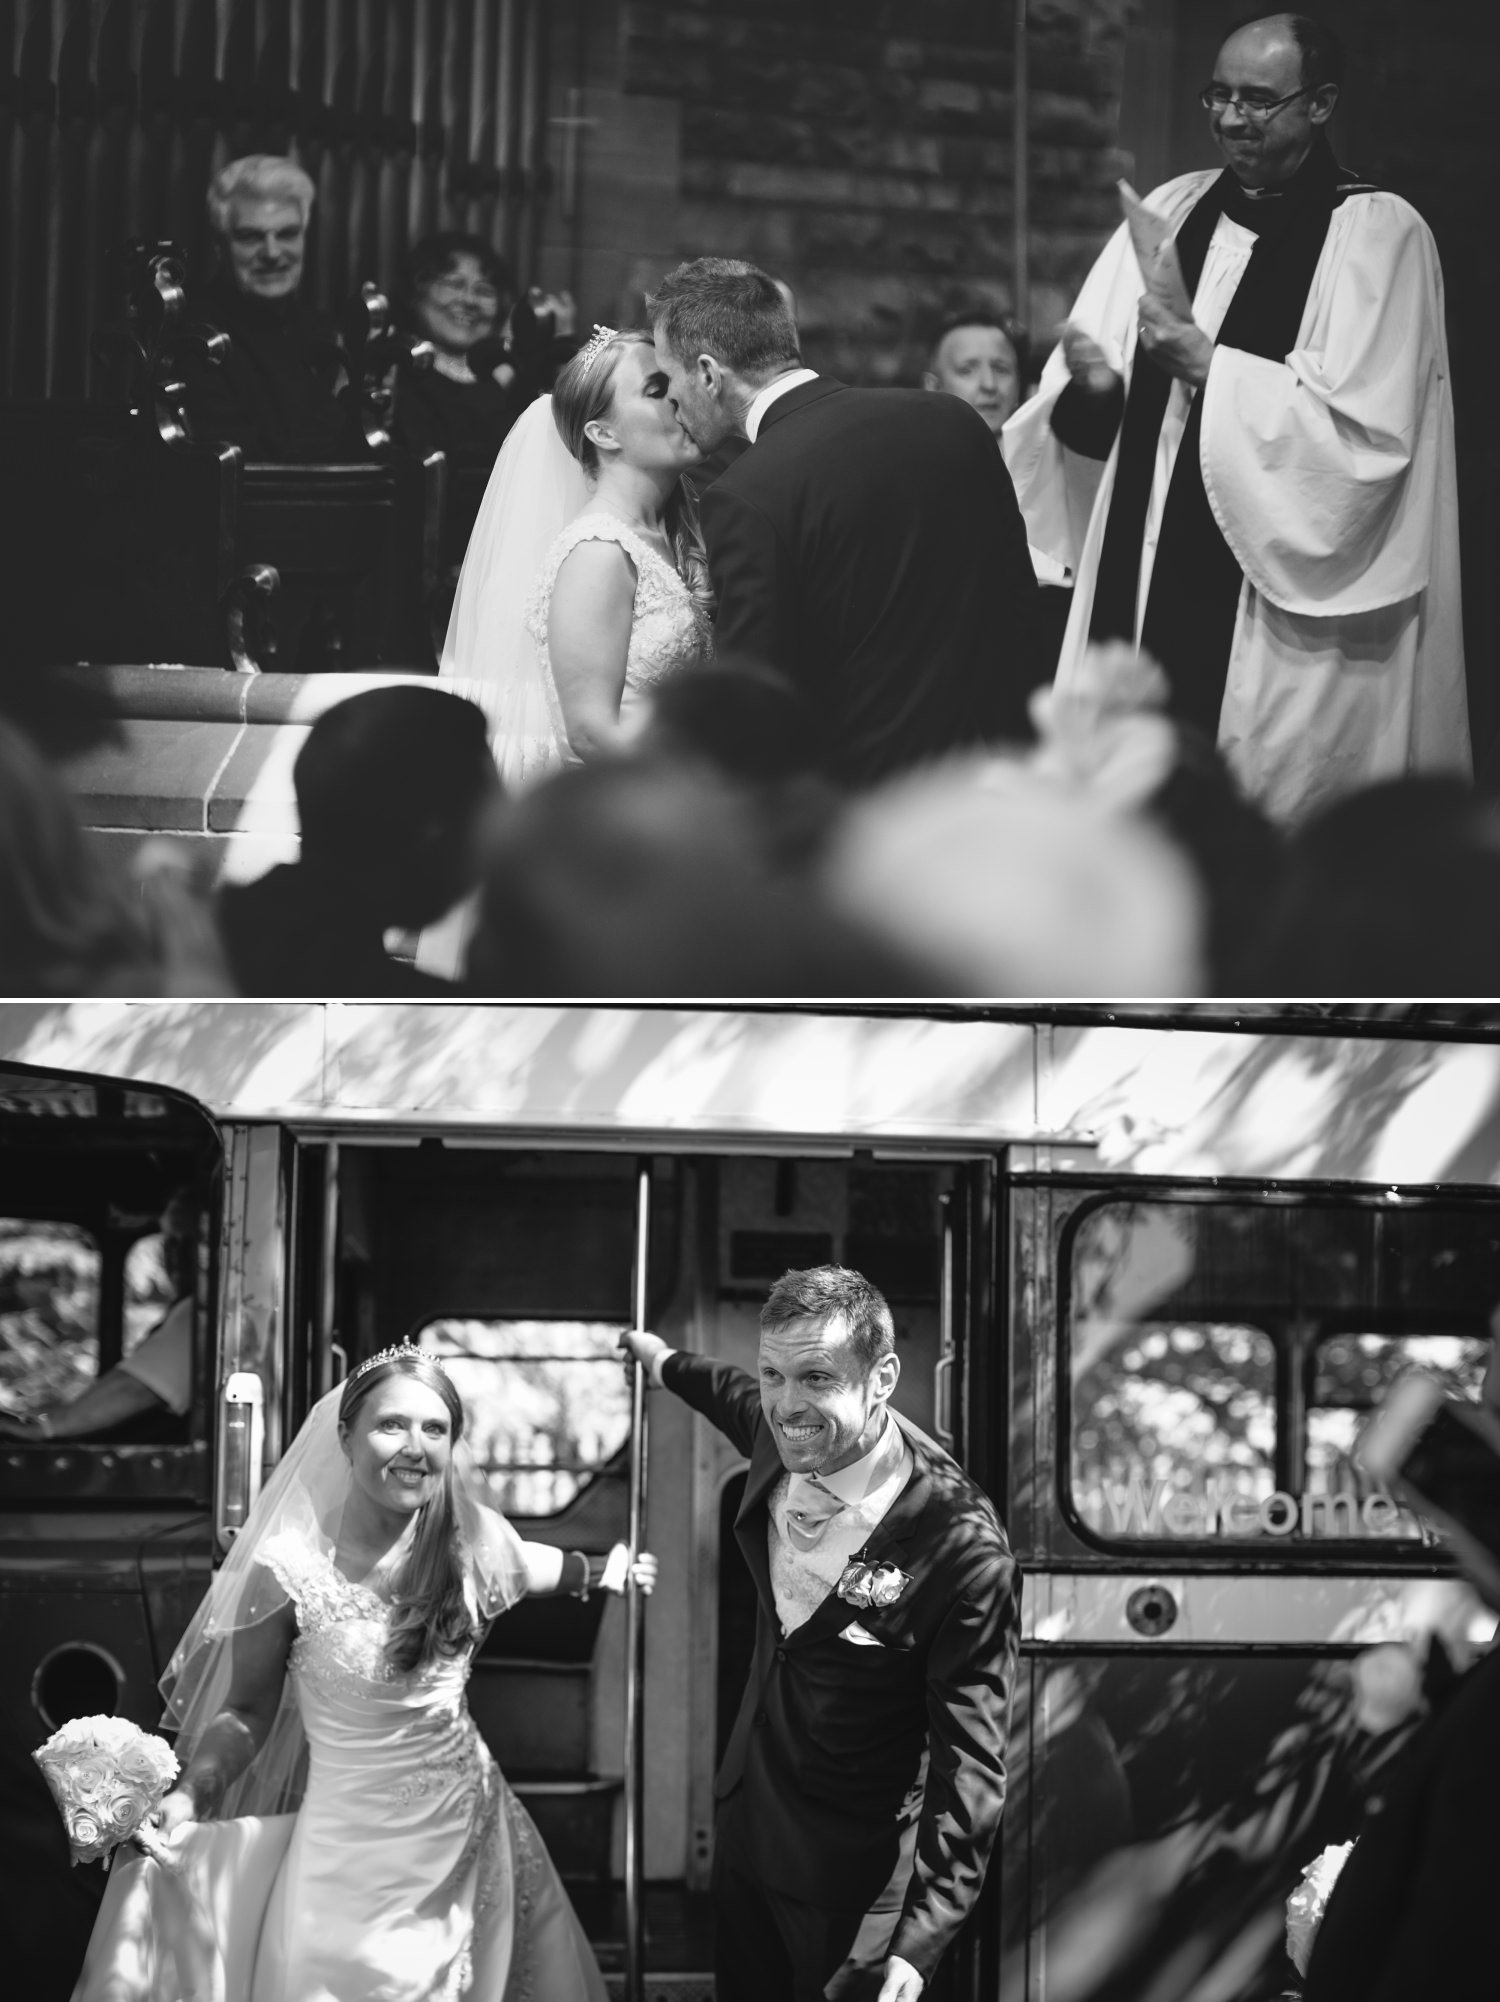 Wedding photography of a first kiss in wedding ceremony in Liverpool